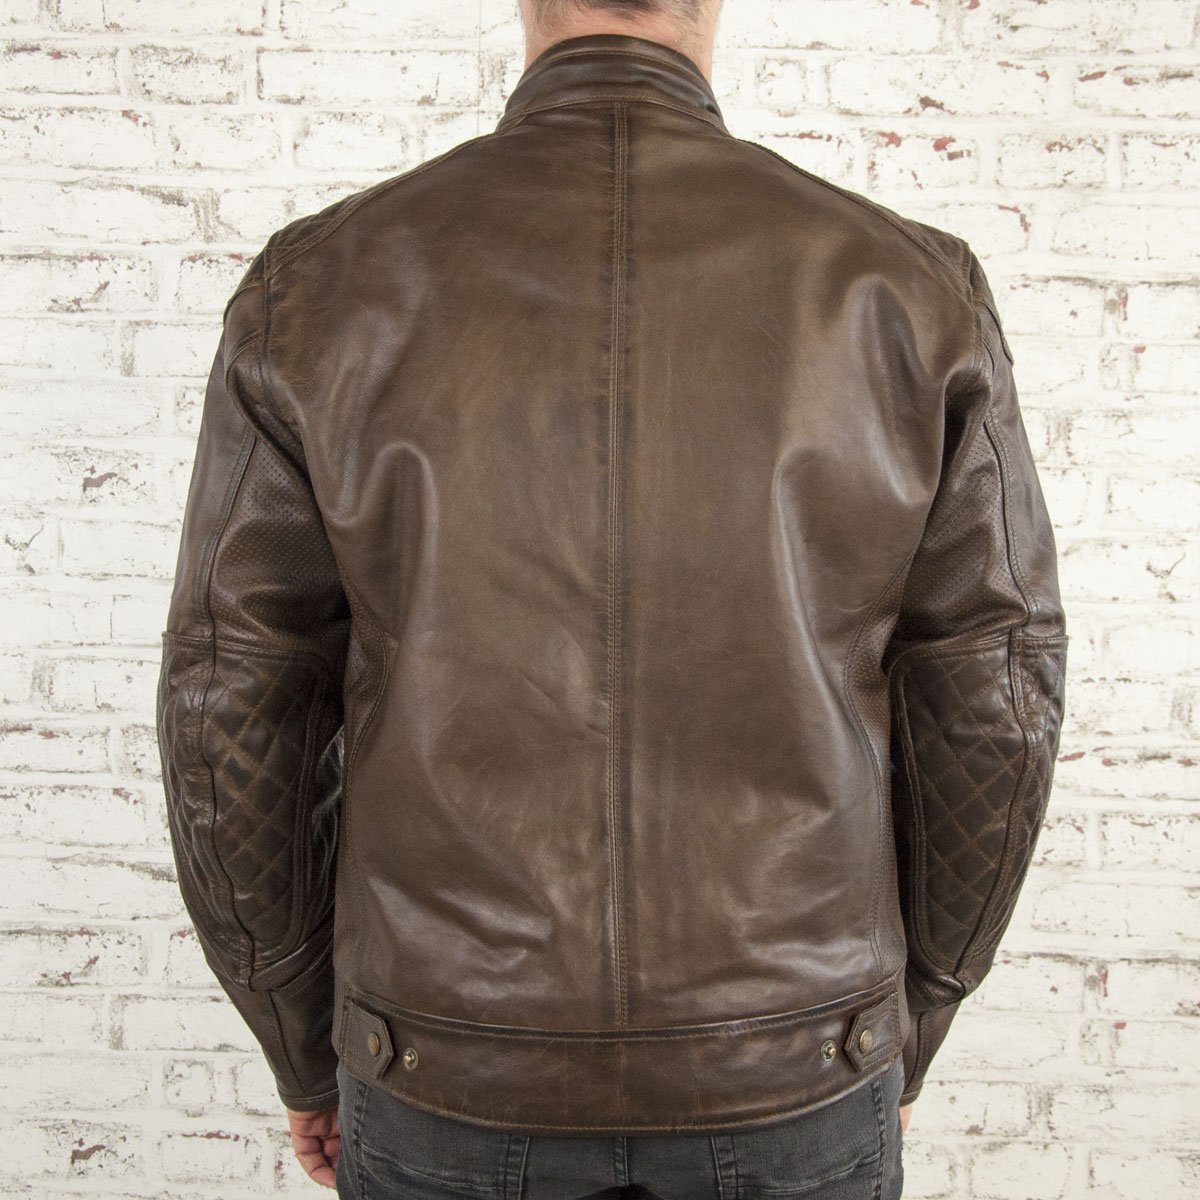 Age of Glory - Age of Glory Rogue Brown Leather Jacket - Men's Jackets - Salt Flats Clothing